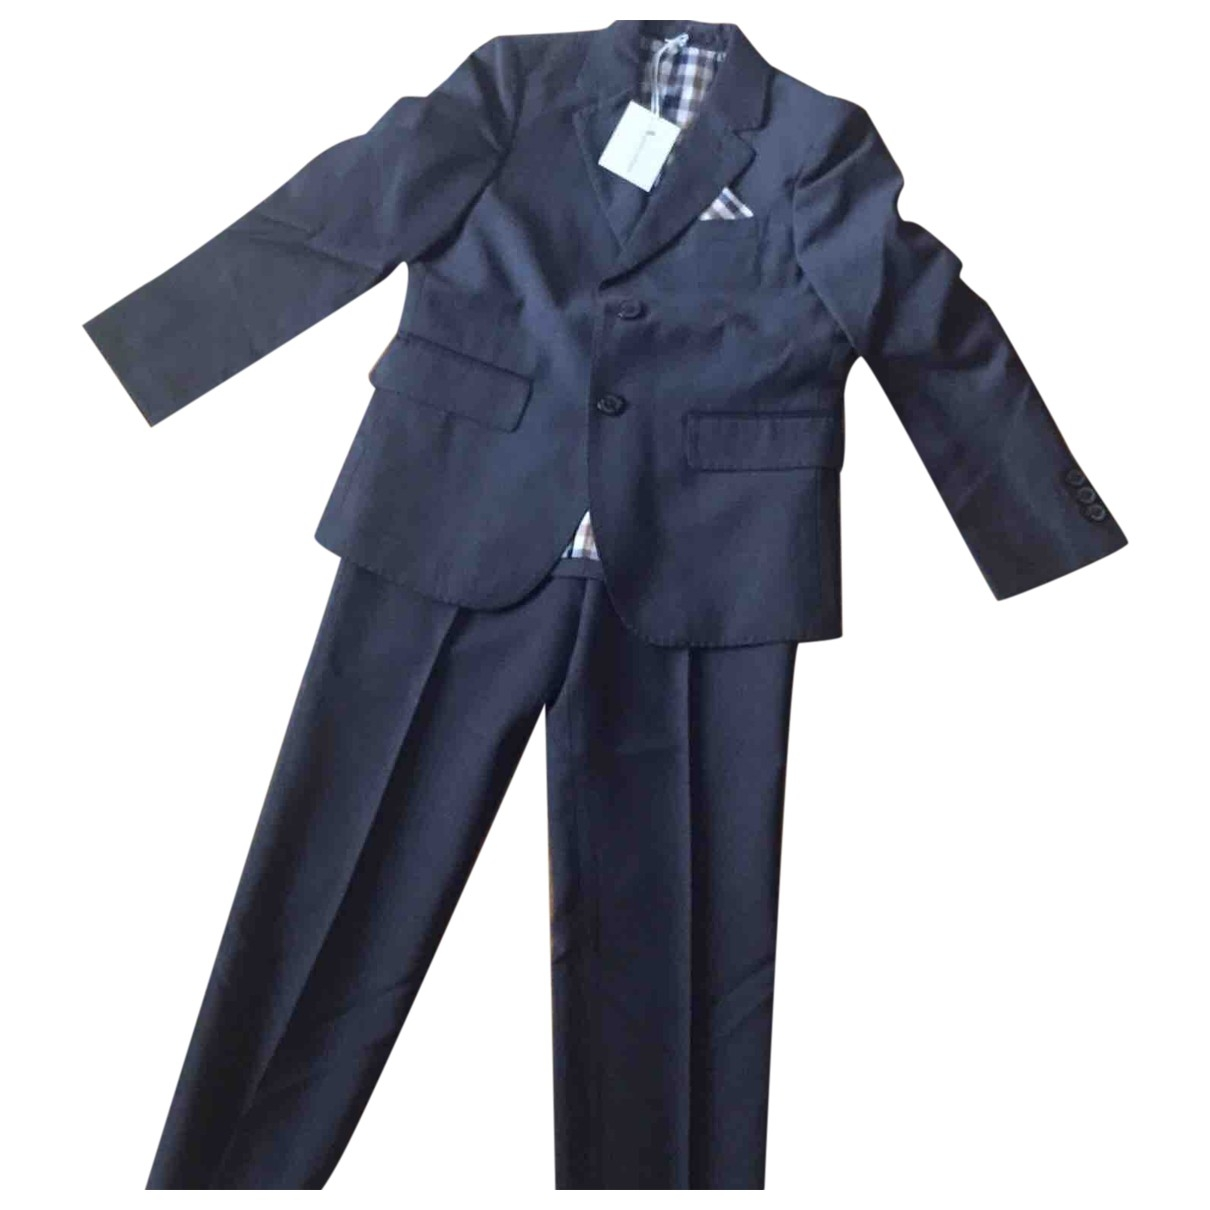 Aquascutum \N Grey Wool Outfits for Kids 6 years - up to 114cm FR